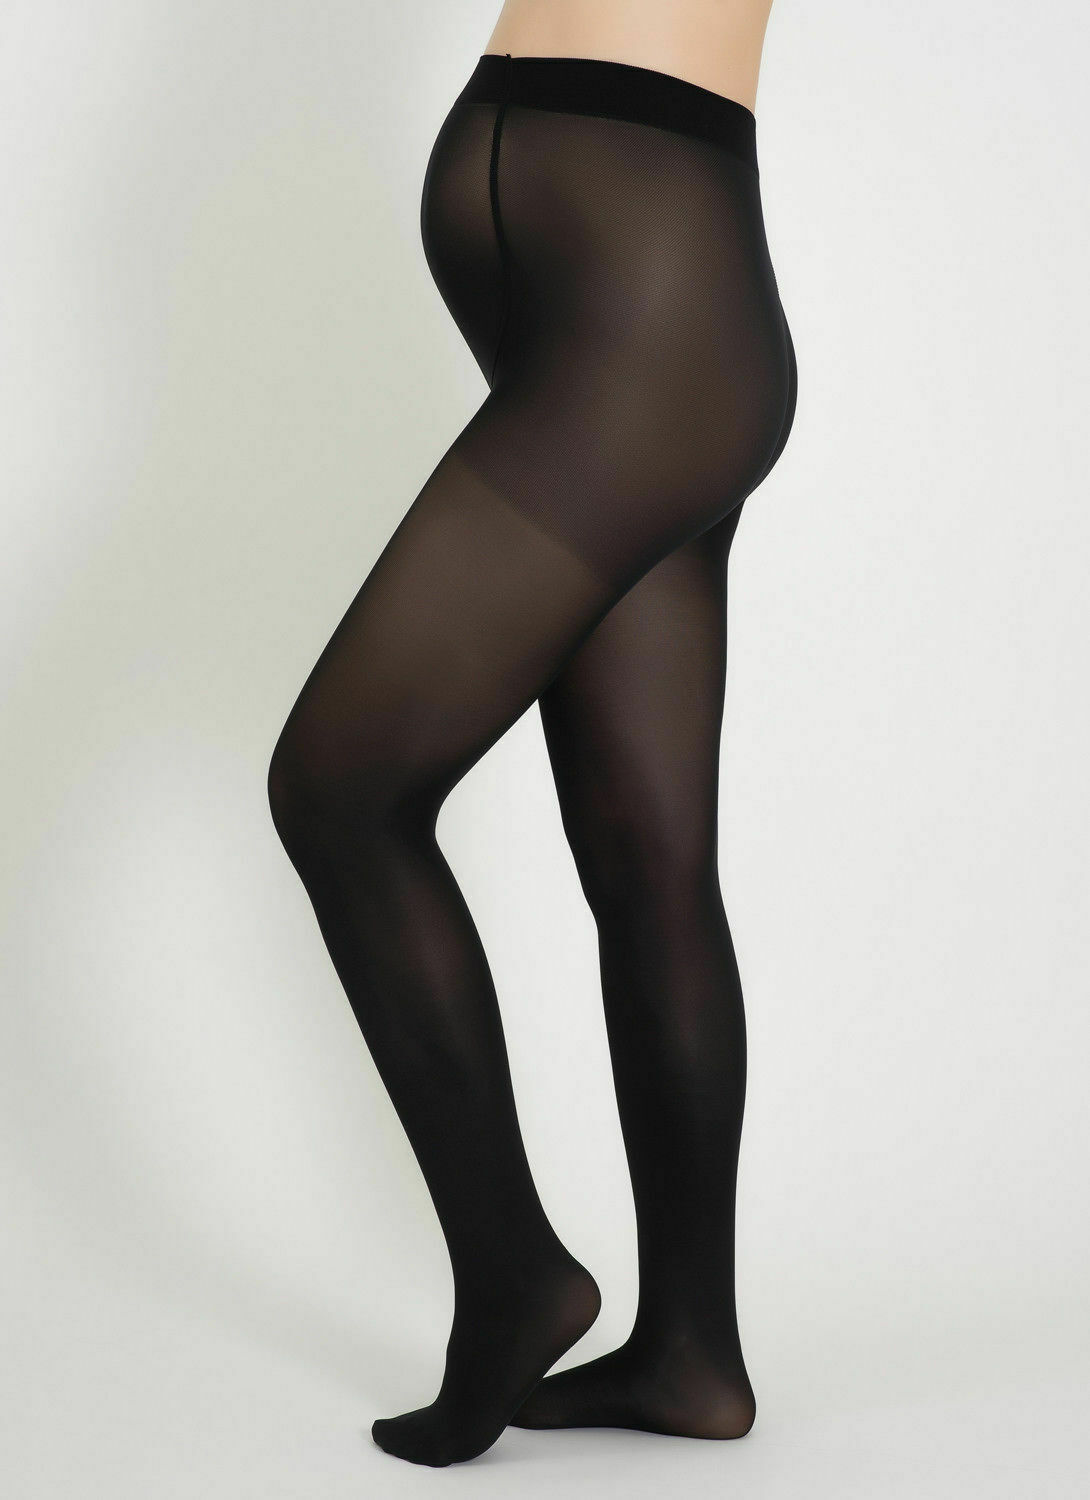 Bellissima-Women-039-s-Maternity-Tights-Black-50-den-Pregnancy-Hosiery thumbnail 16